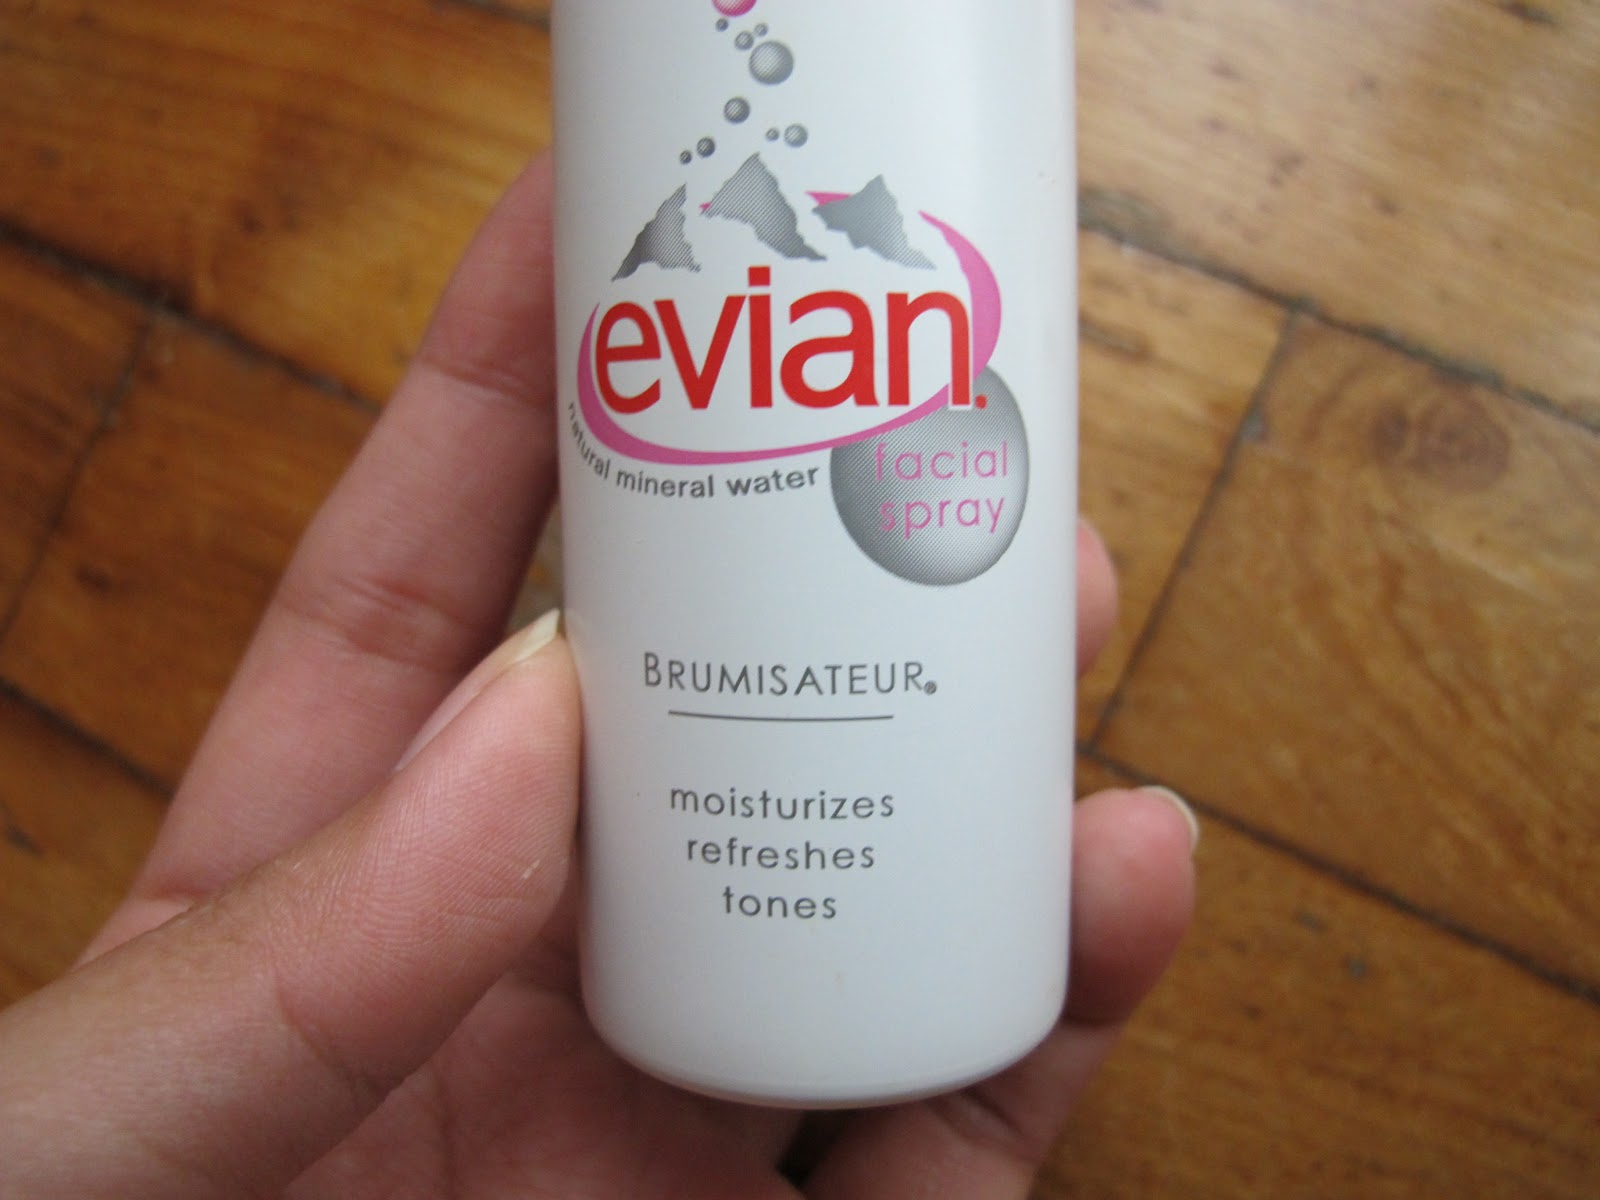 Vainy Maynee A Little Of Everything Evian Facial Spray 300ml At Home Or The Beach Whole Family Will Love And 400 Ml Maxi Sizesinformation By Http Eviancom En Int 56